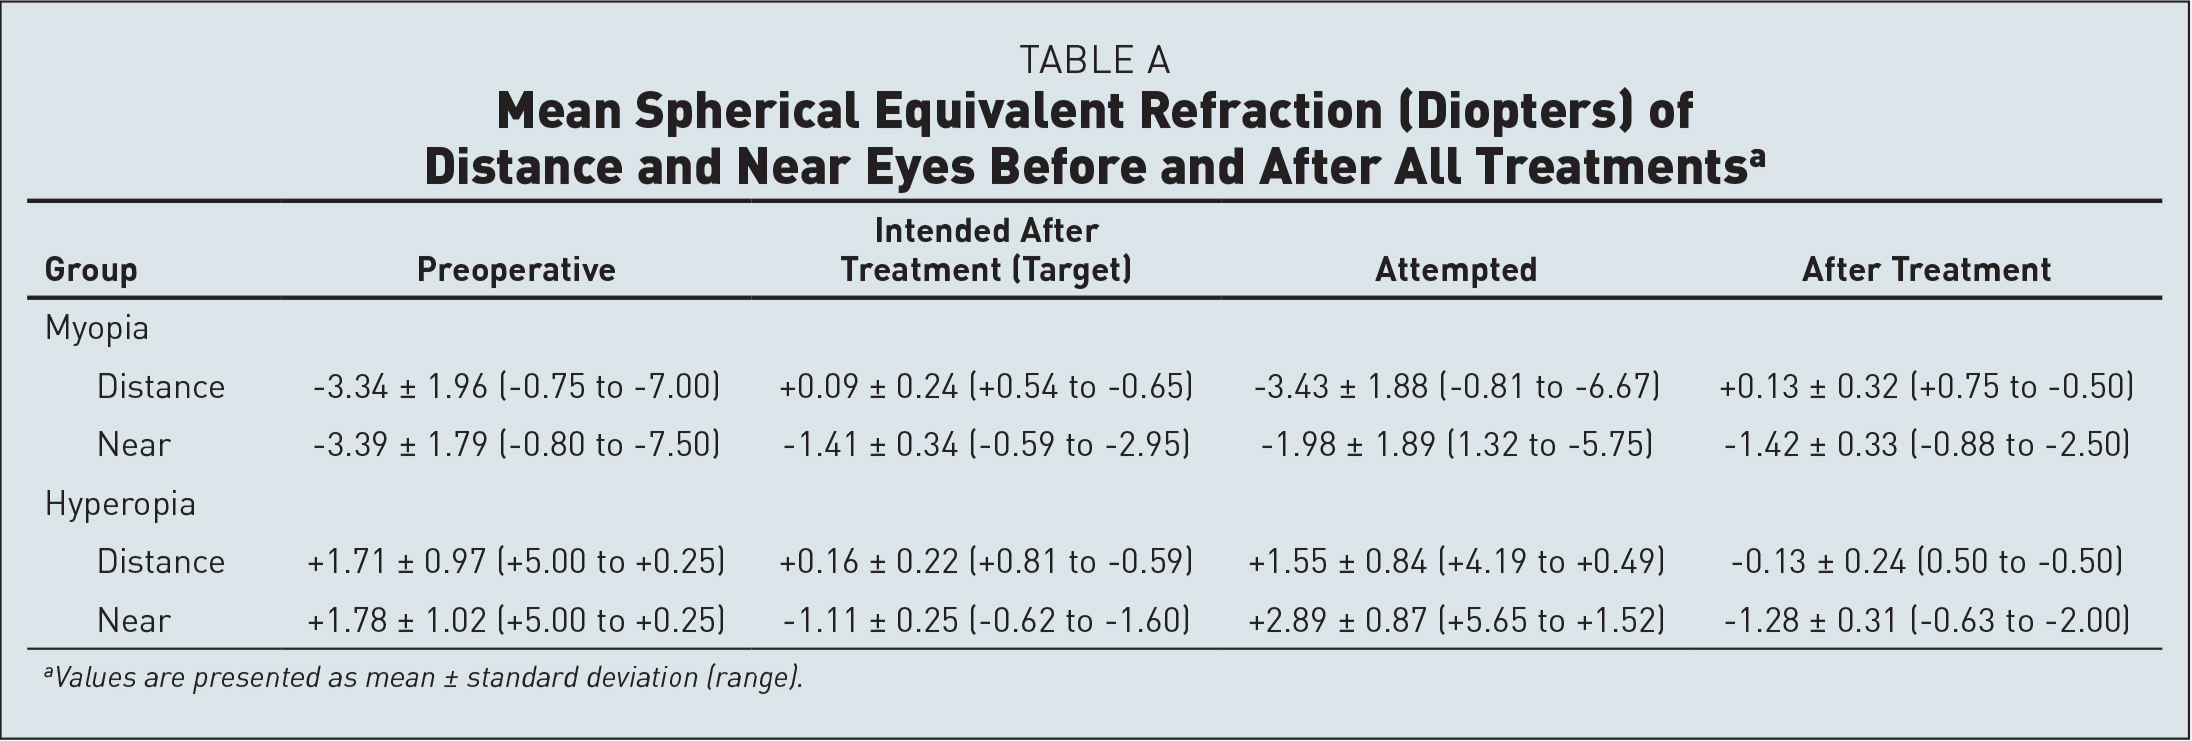 Mean Spherical Equivalent Refraction (Diopters) of Distance and Near Eyes Before and After All Treatmentsa